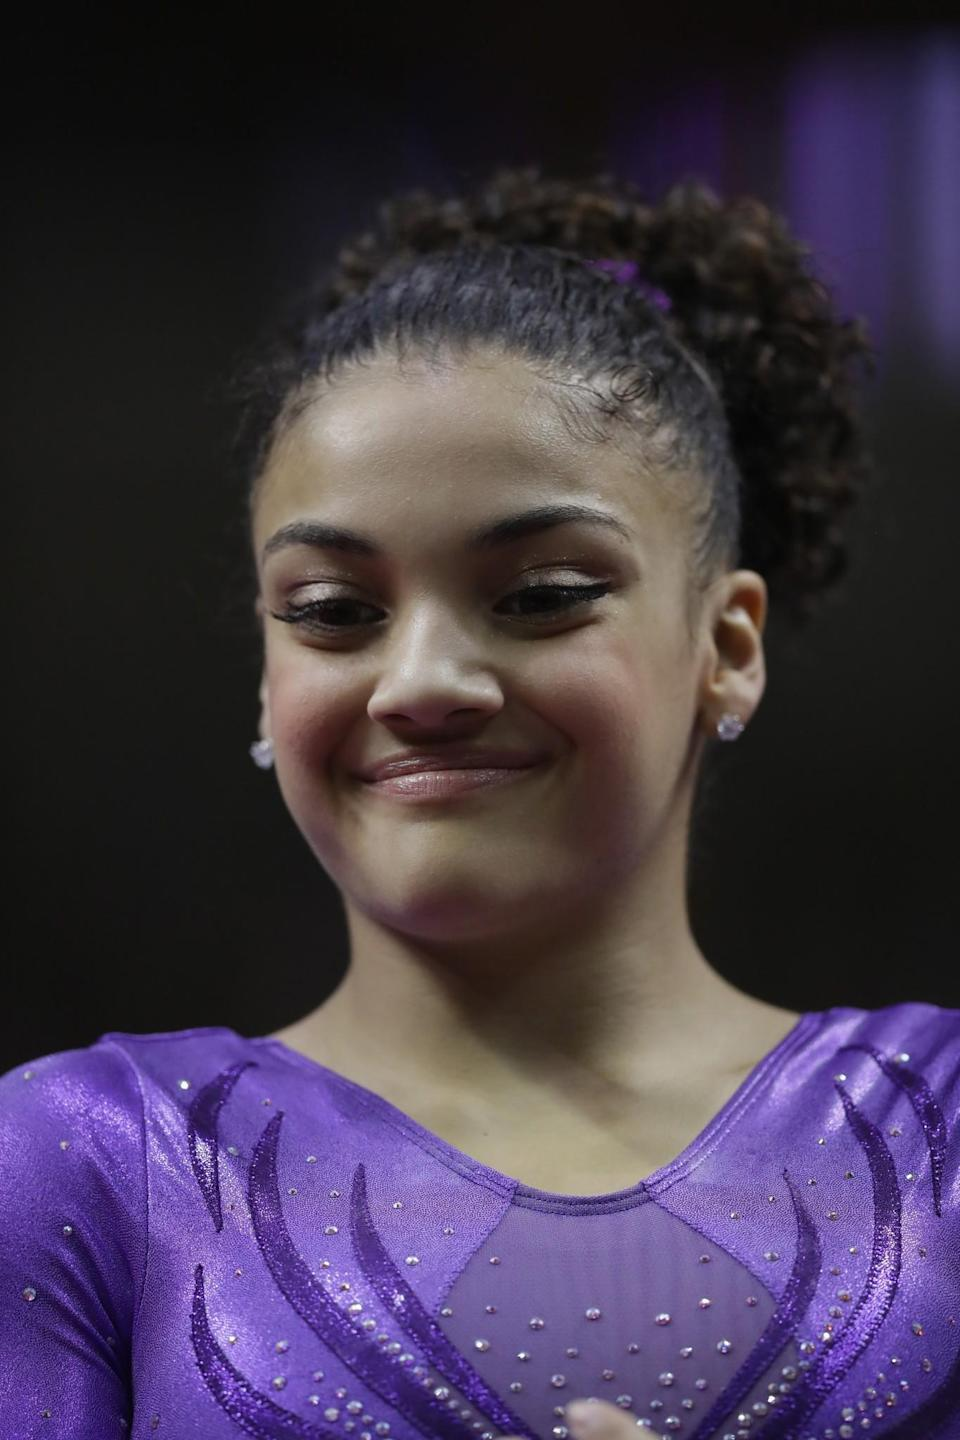 <p>Lauren 'Laurie' Hernandez won medals in all four events at the junior world championships. She finished second all-around after Biles in the Olympic Trials. (Getty) </p>